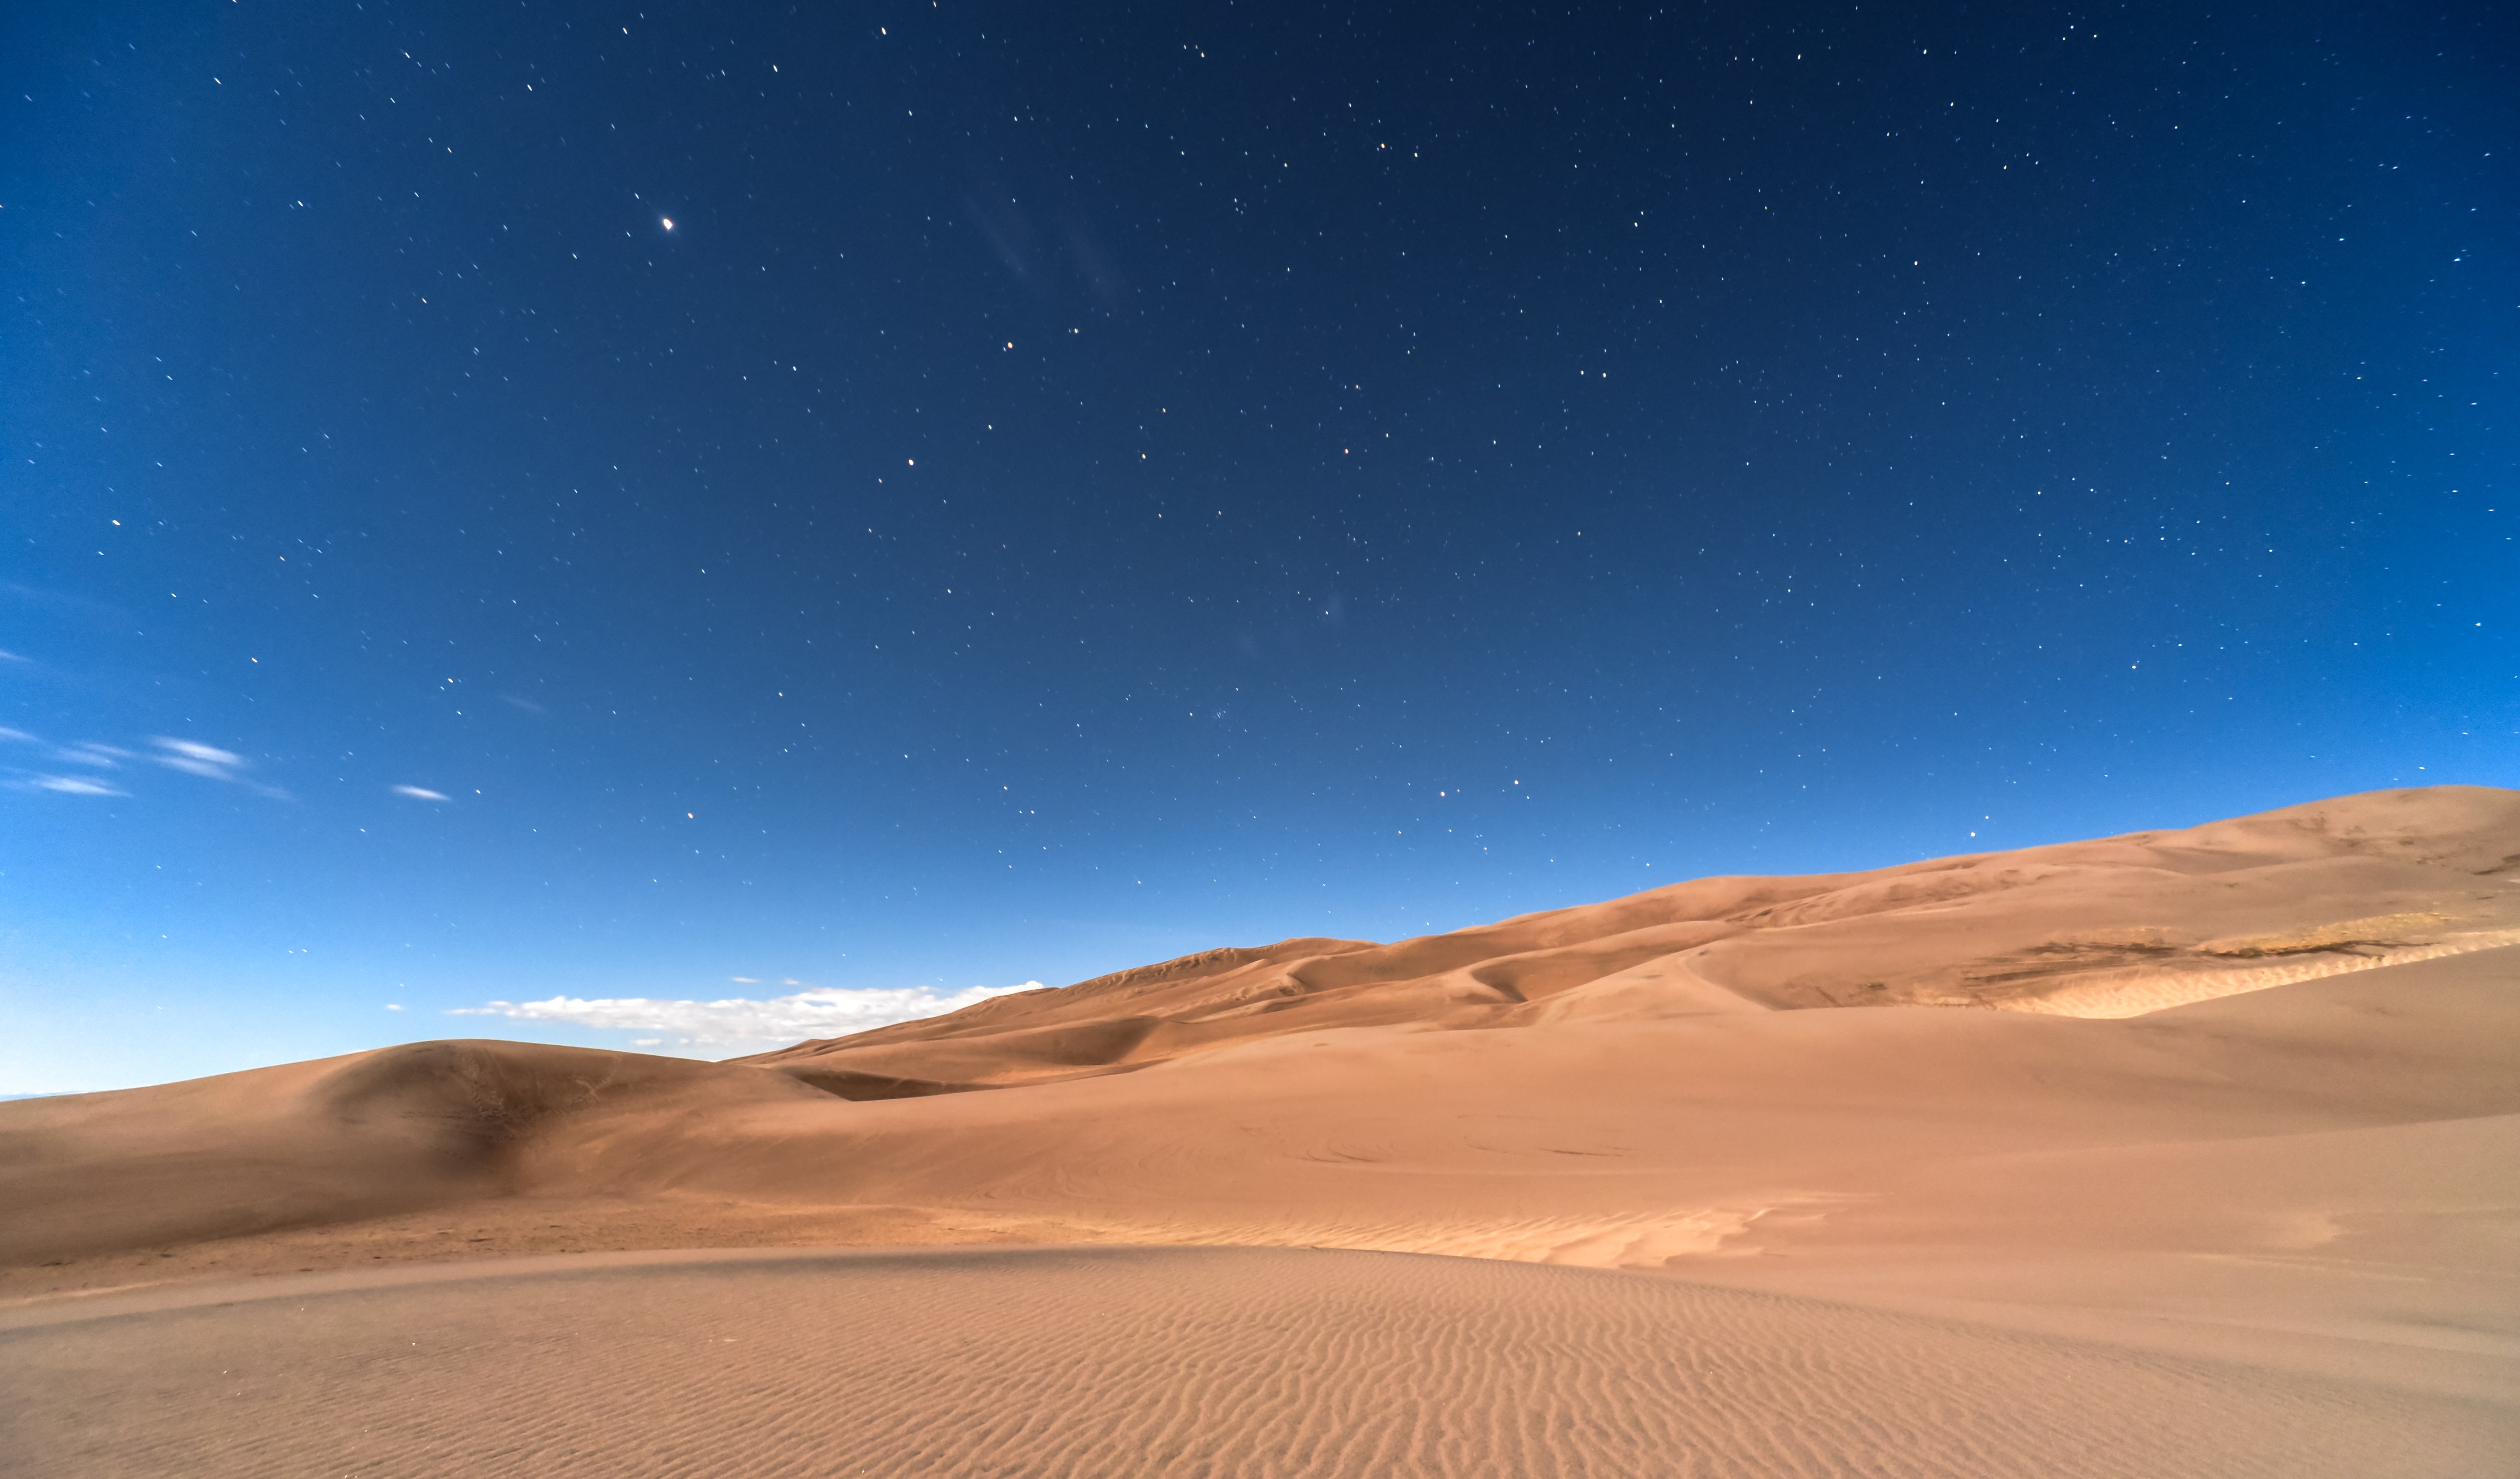 Stars in the clear night sky over a sandy desert in Colorado